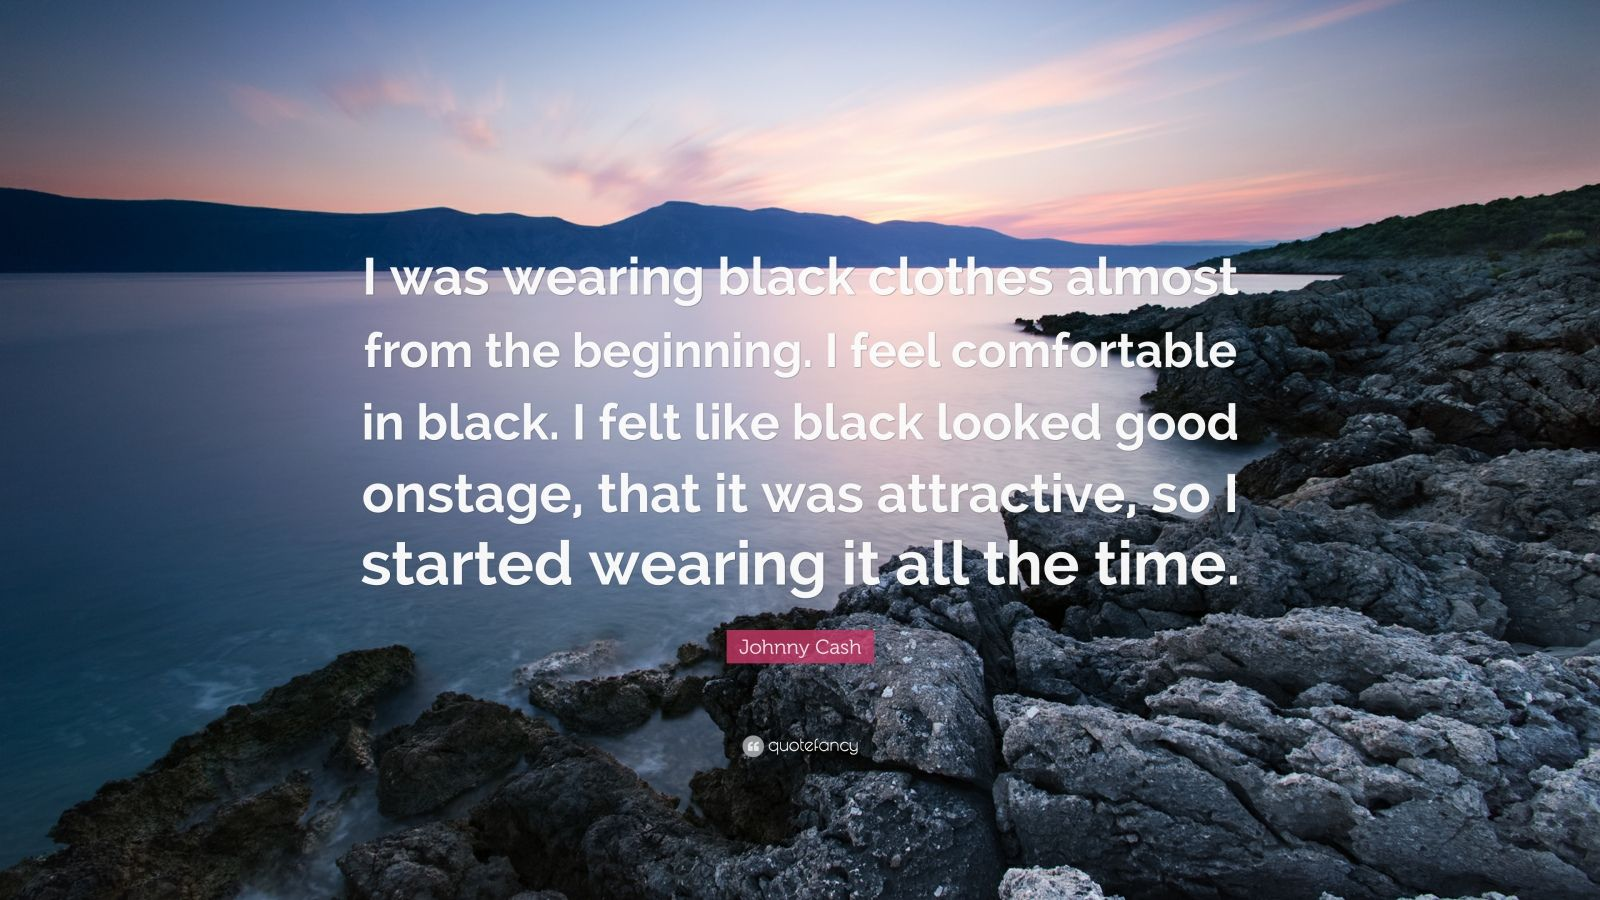 """Johnny Cash Quote: """"I was wearing black clothes almost from the beginning. I feel comfortable in black. I felt like black looked good onstage, that it was attractive, so I started wearing it all the time."""""""